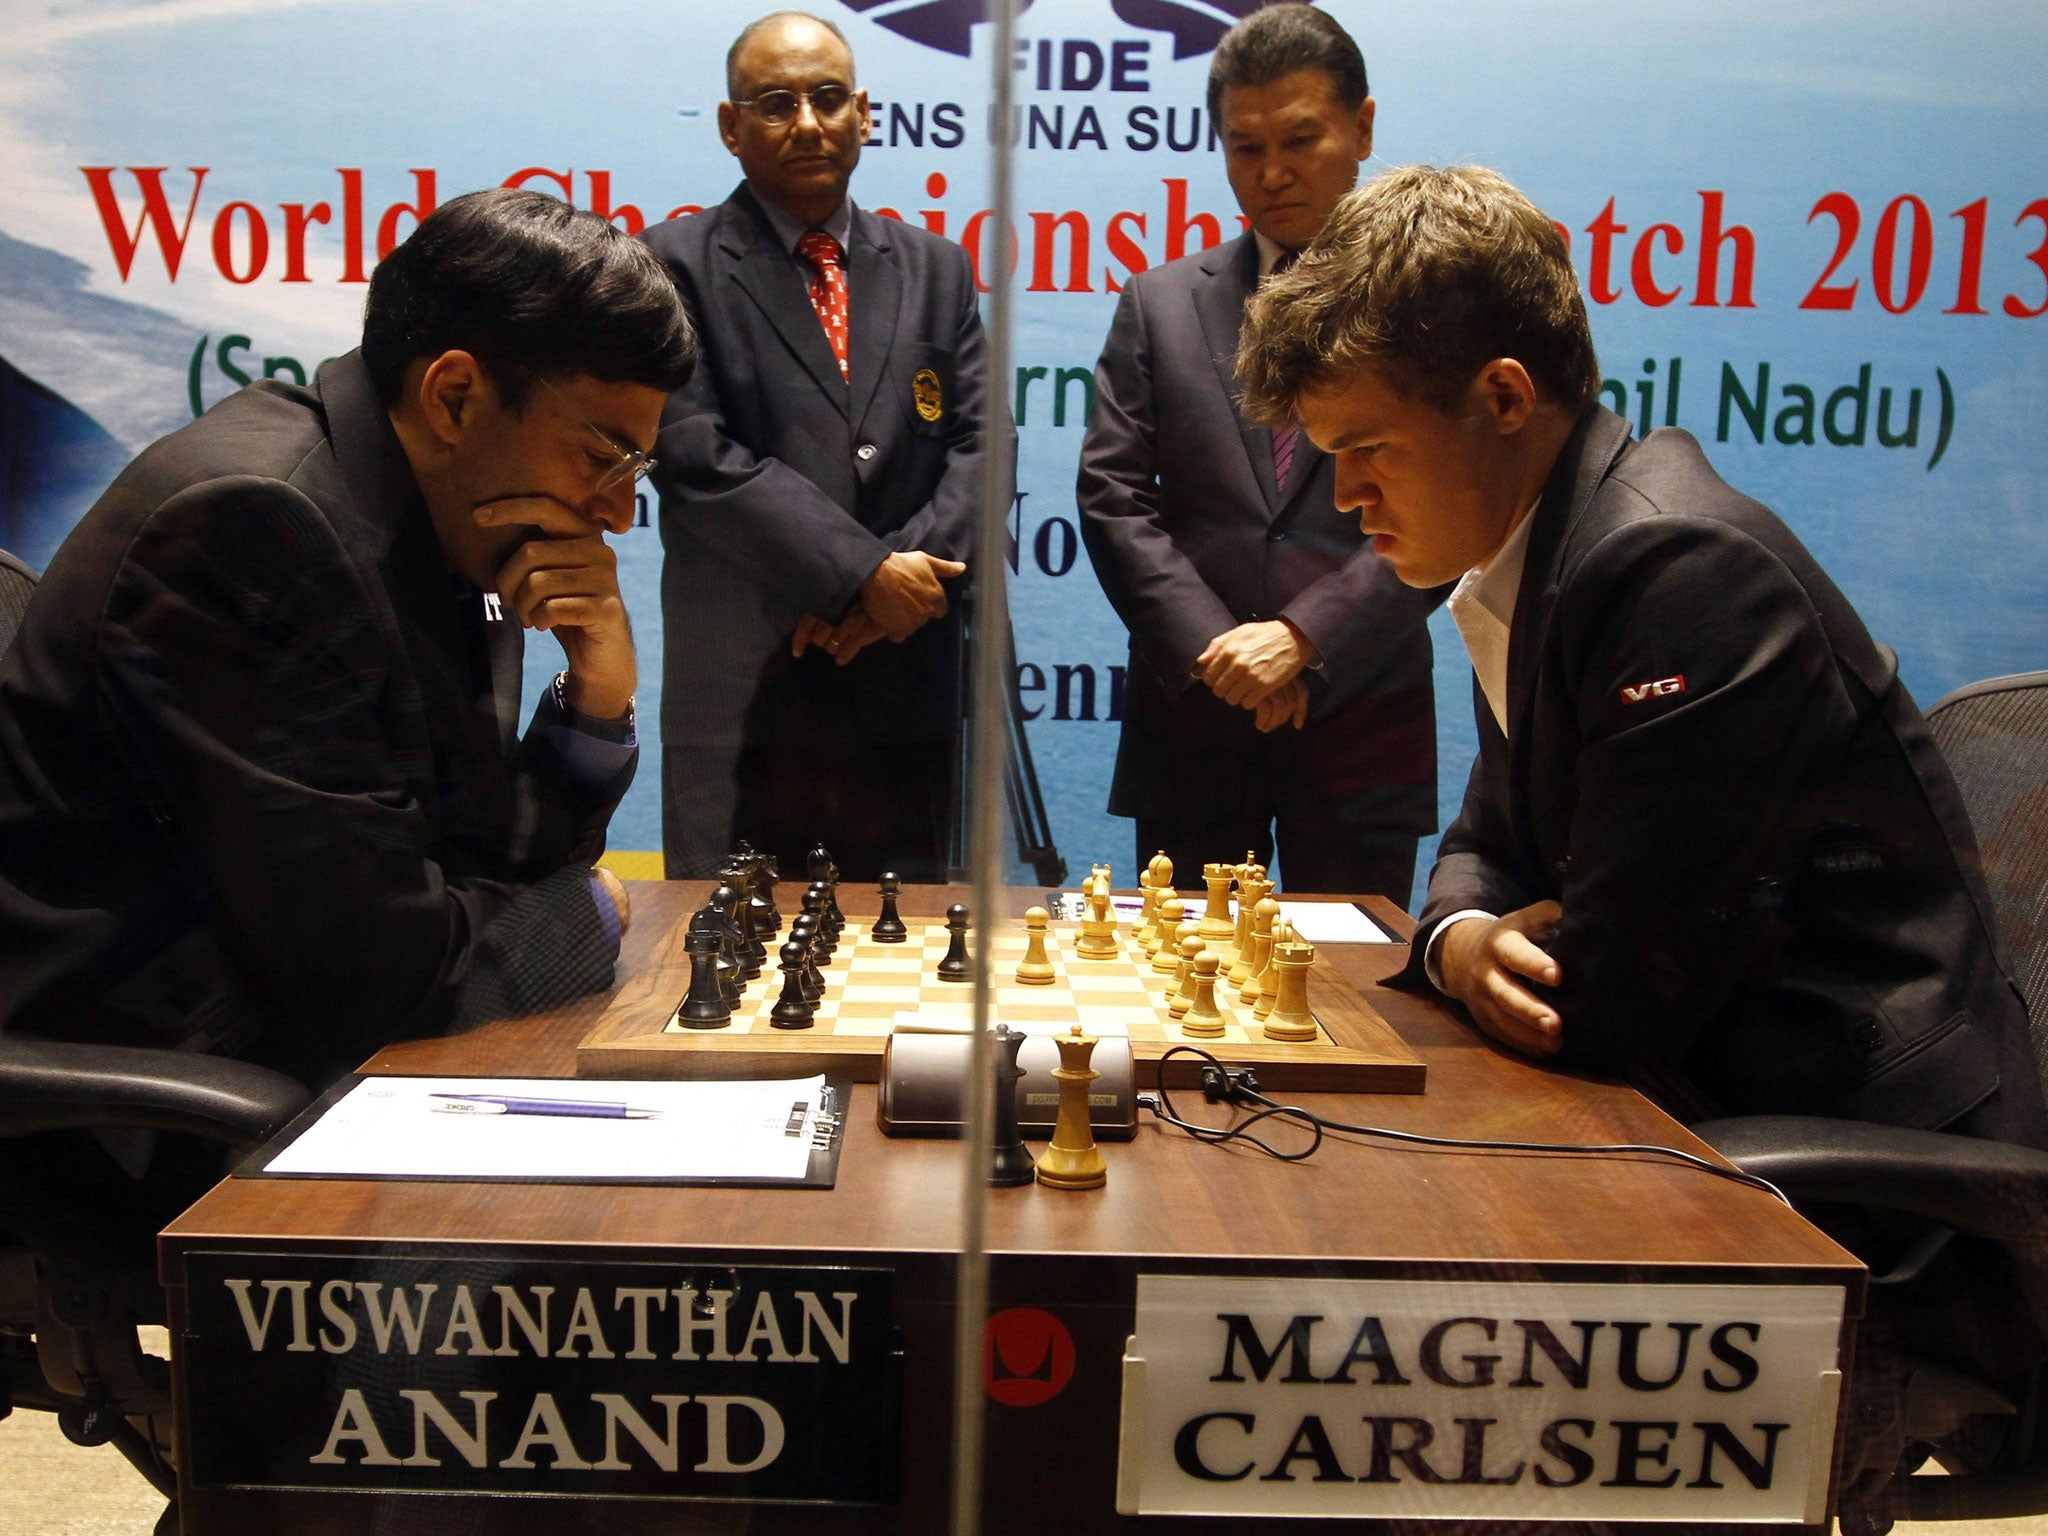 Viswanathan Anand vs Magnus Carlsen: Chess stages biggest game since Fischer vs Spassky